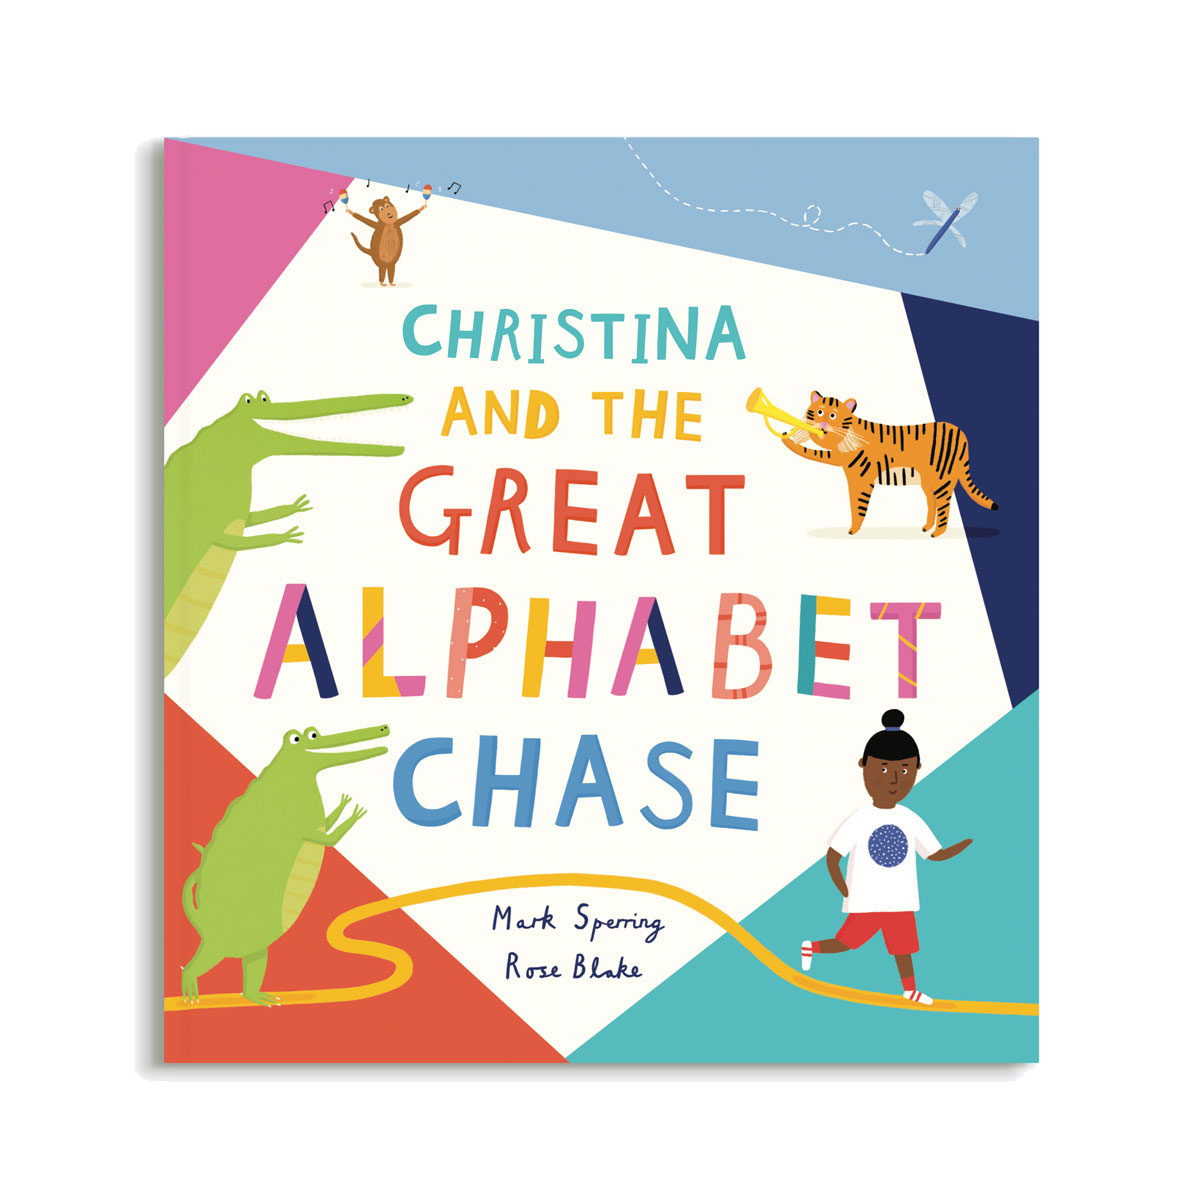 Papier The Great Alphabet Chase Personalised Children's Book